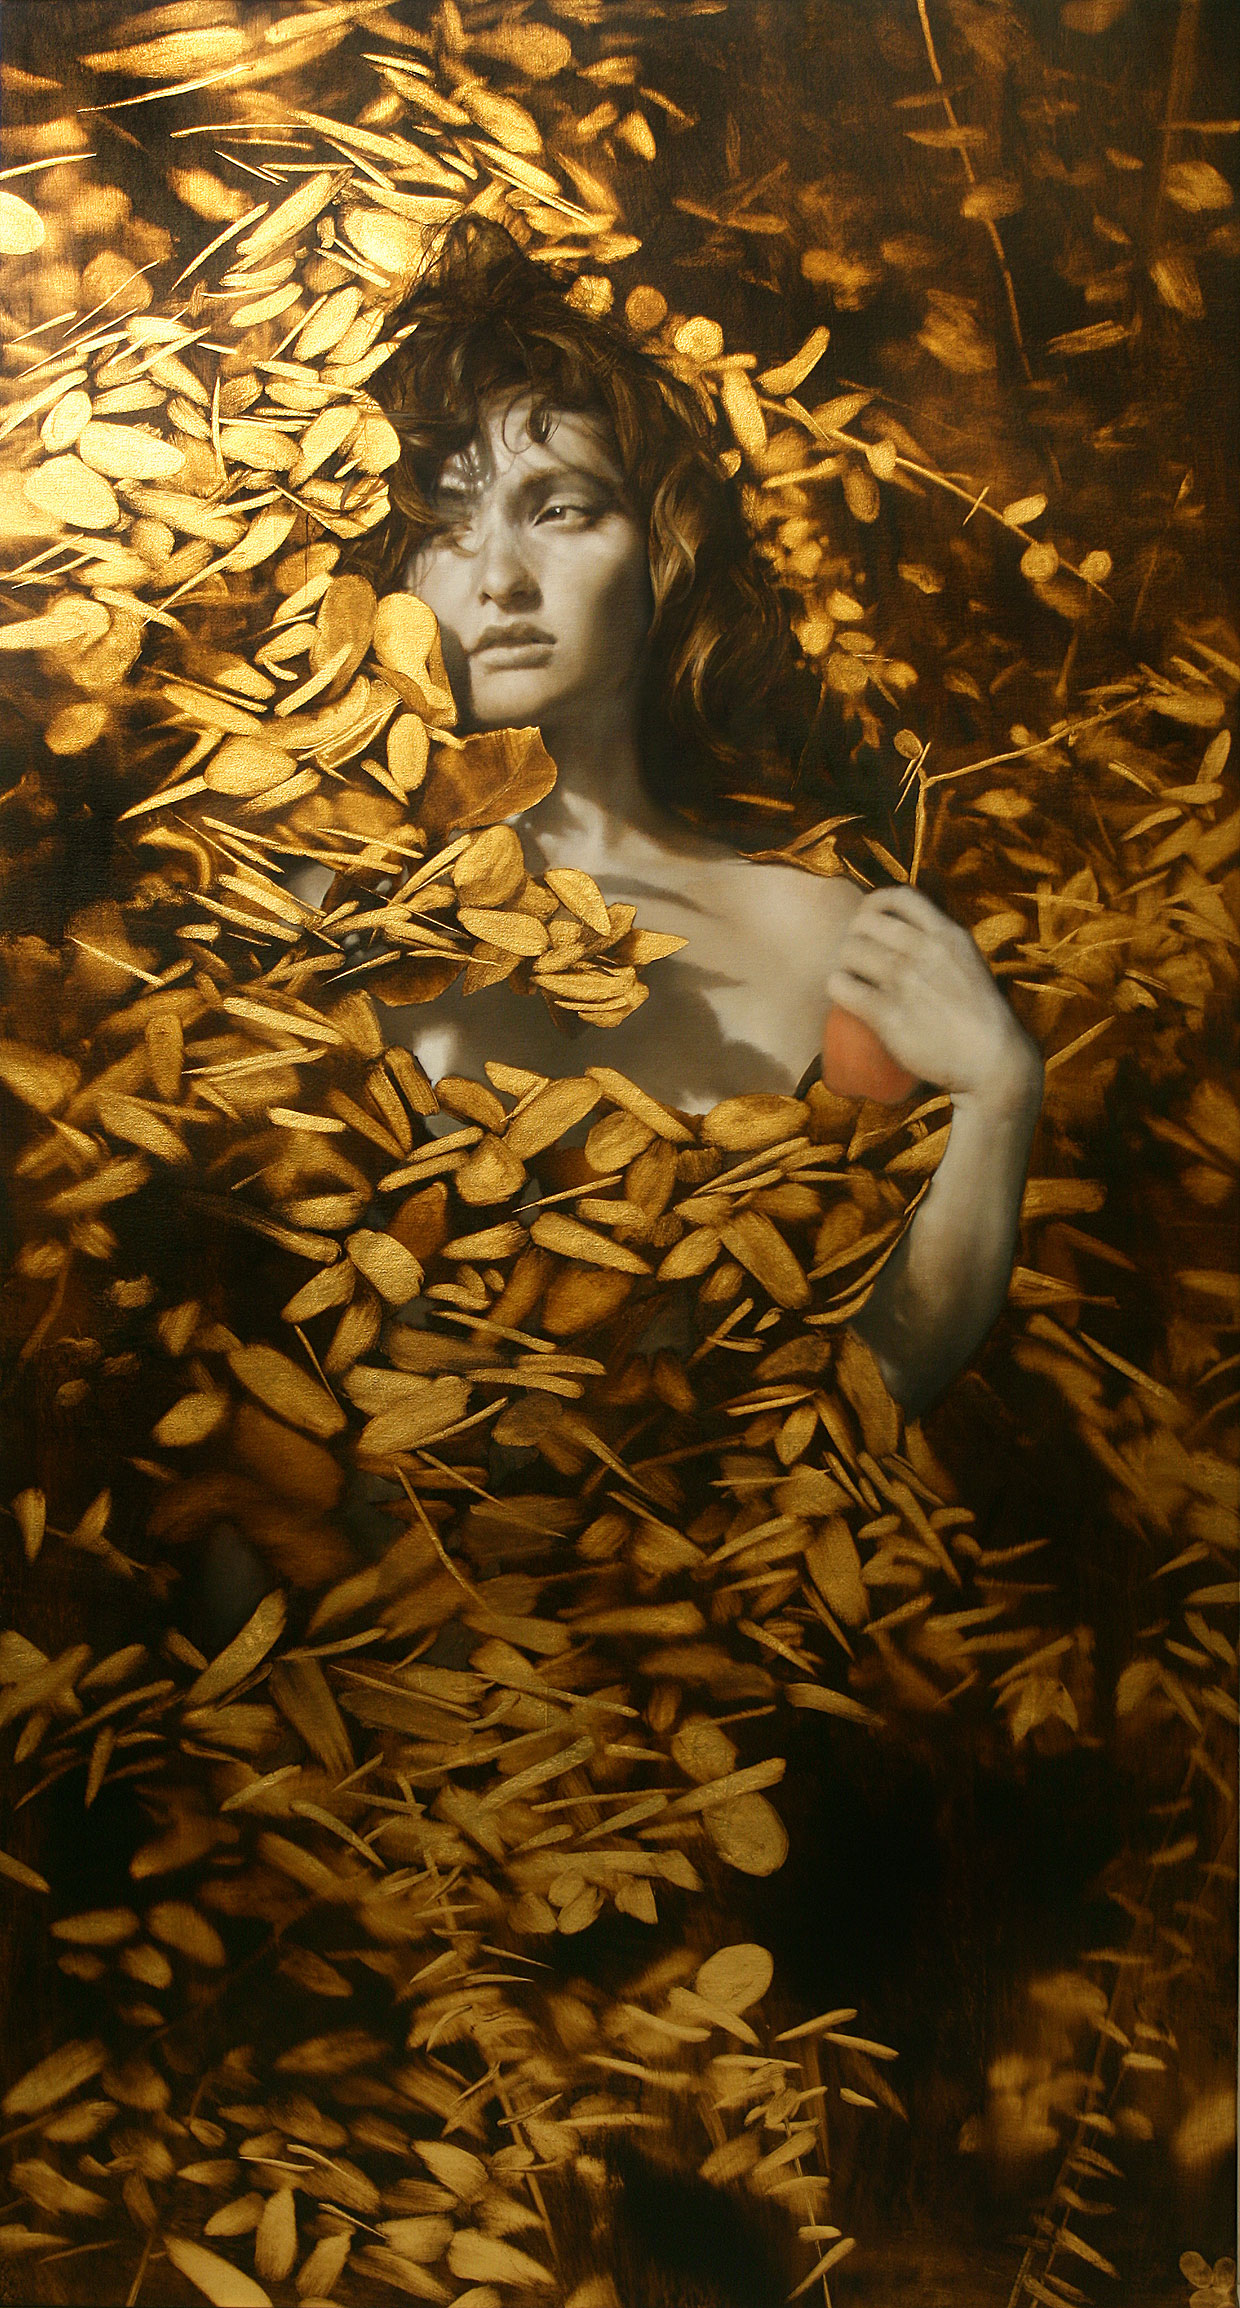 Revelen.  61 x 33 inches. Oil and gold leaf on linen. Private collection.